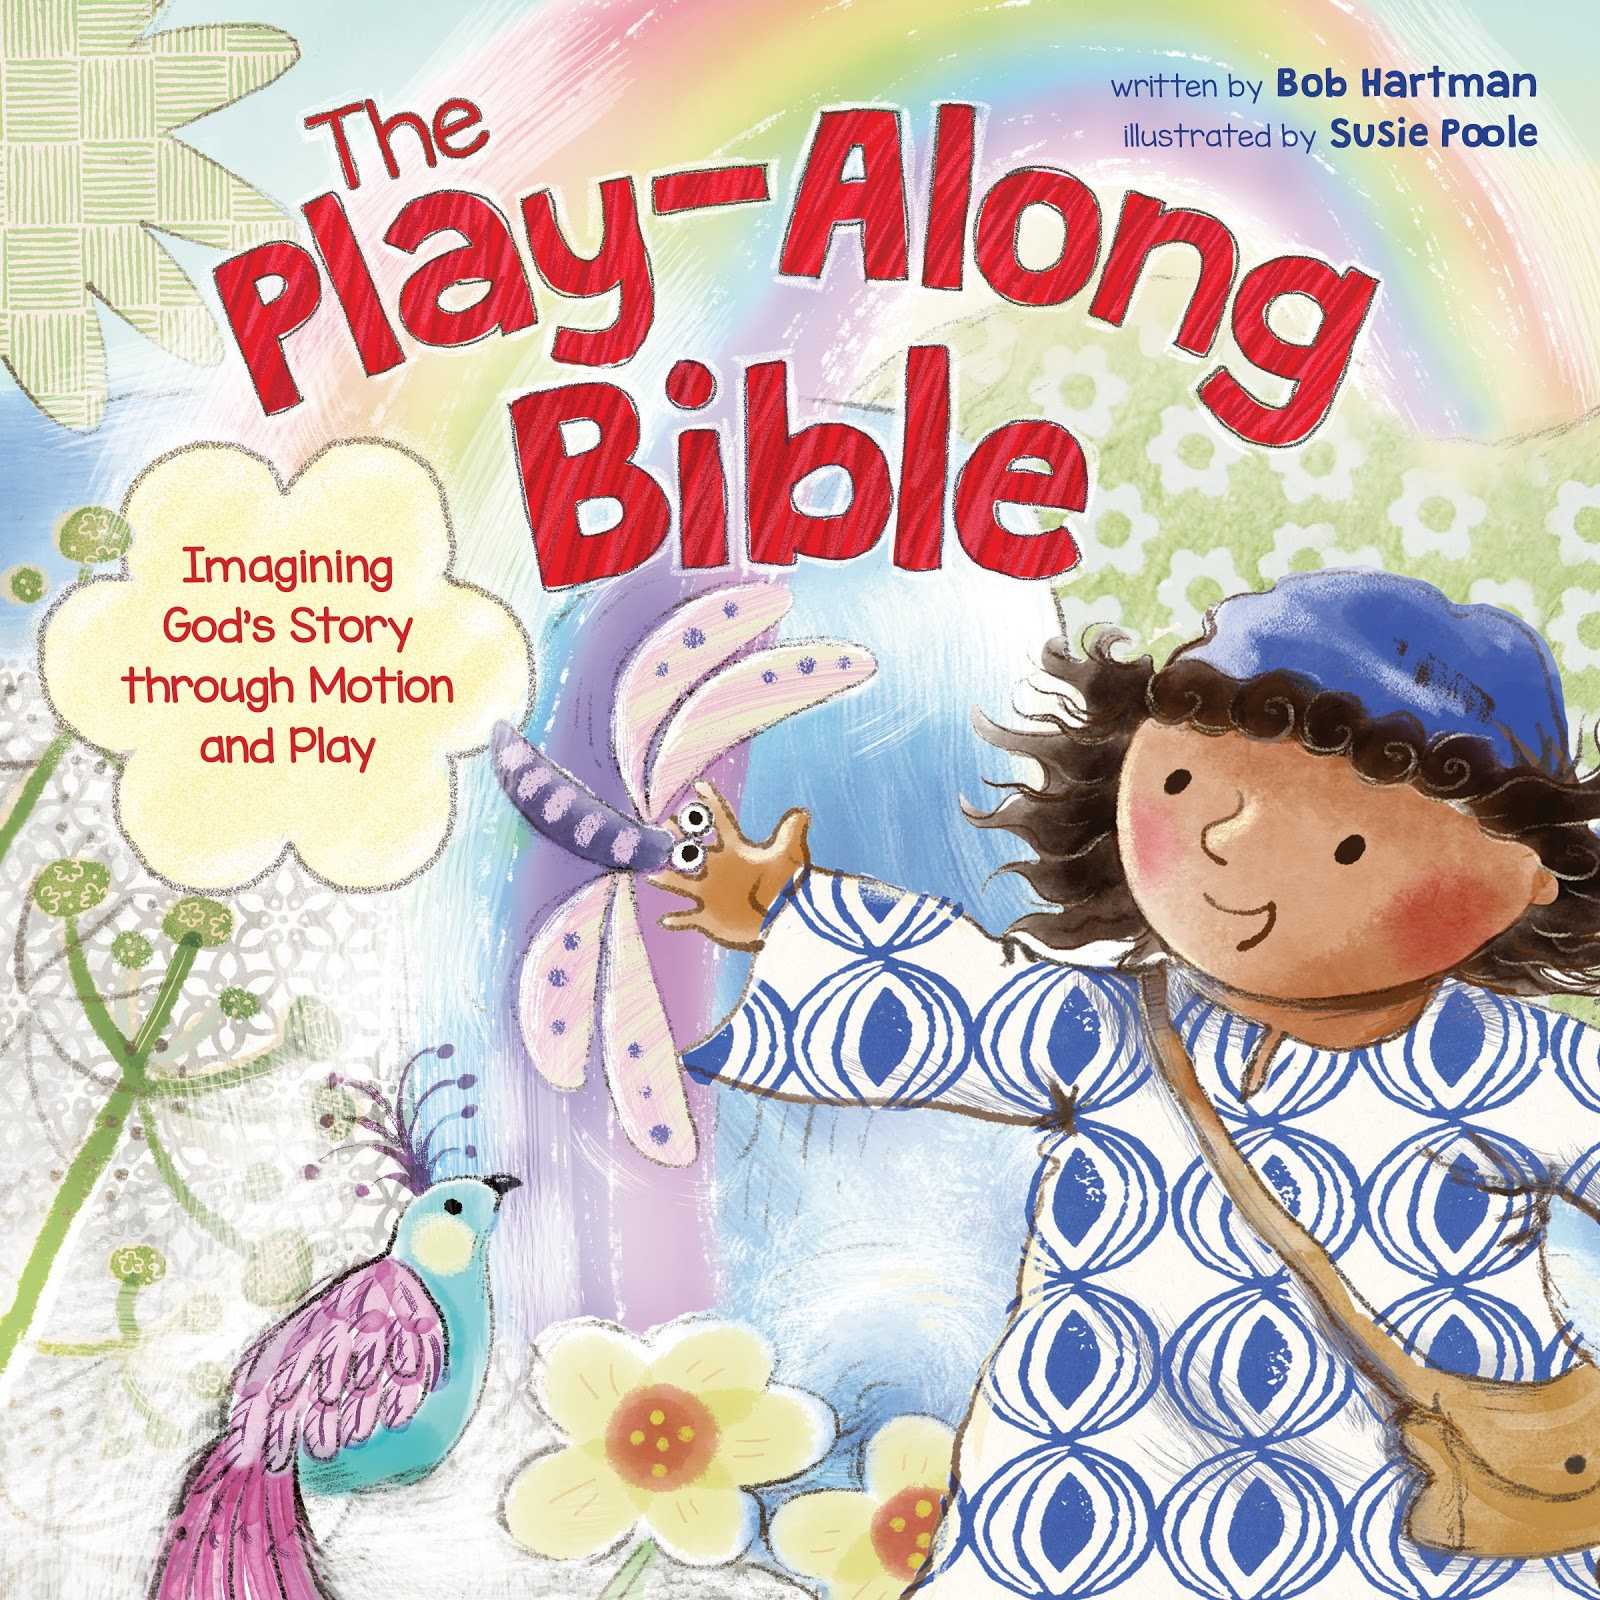 Imagining God's Story through Motion and Play: The Play-Along Bible